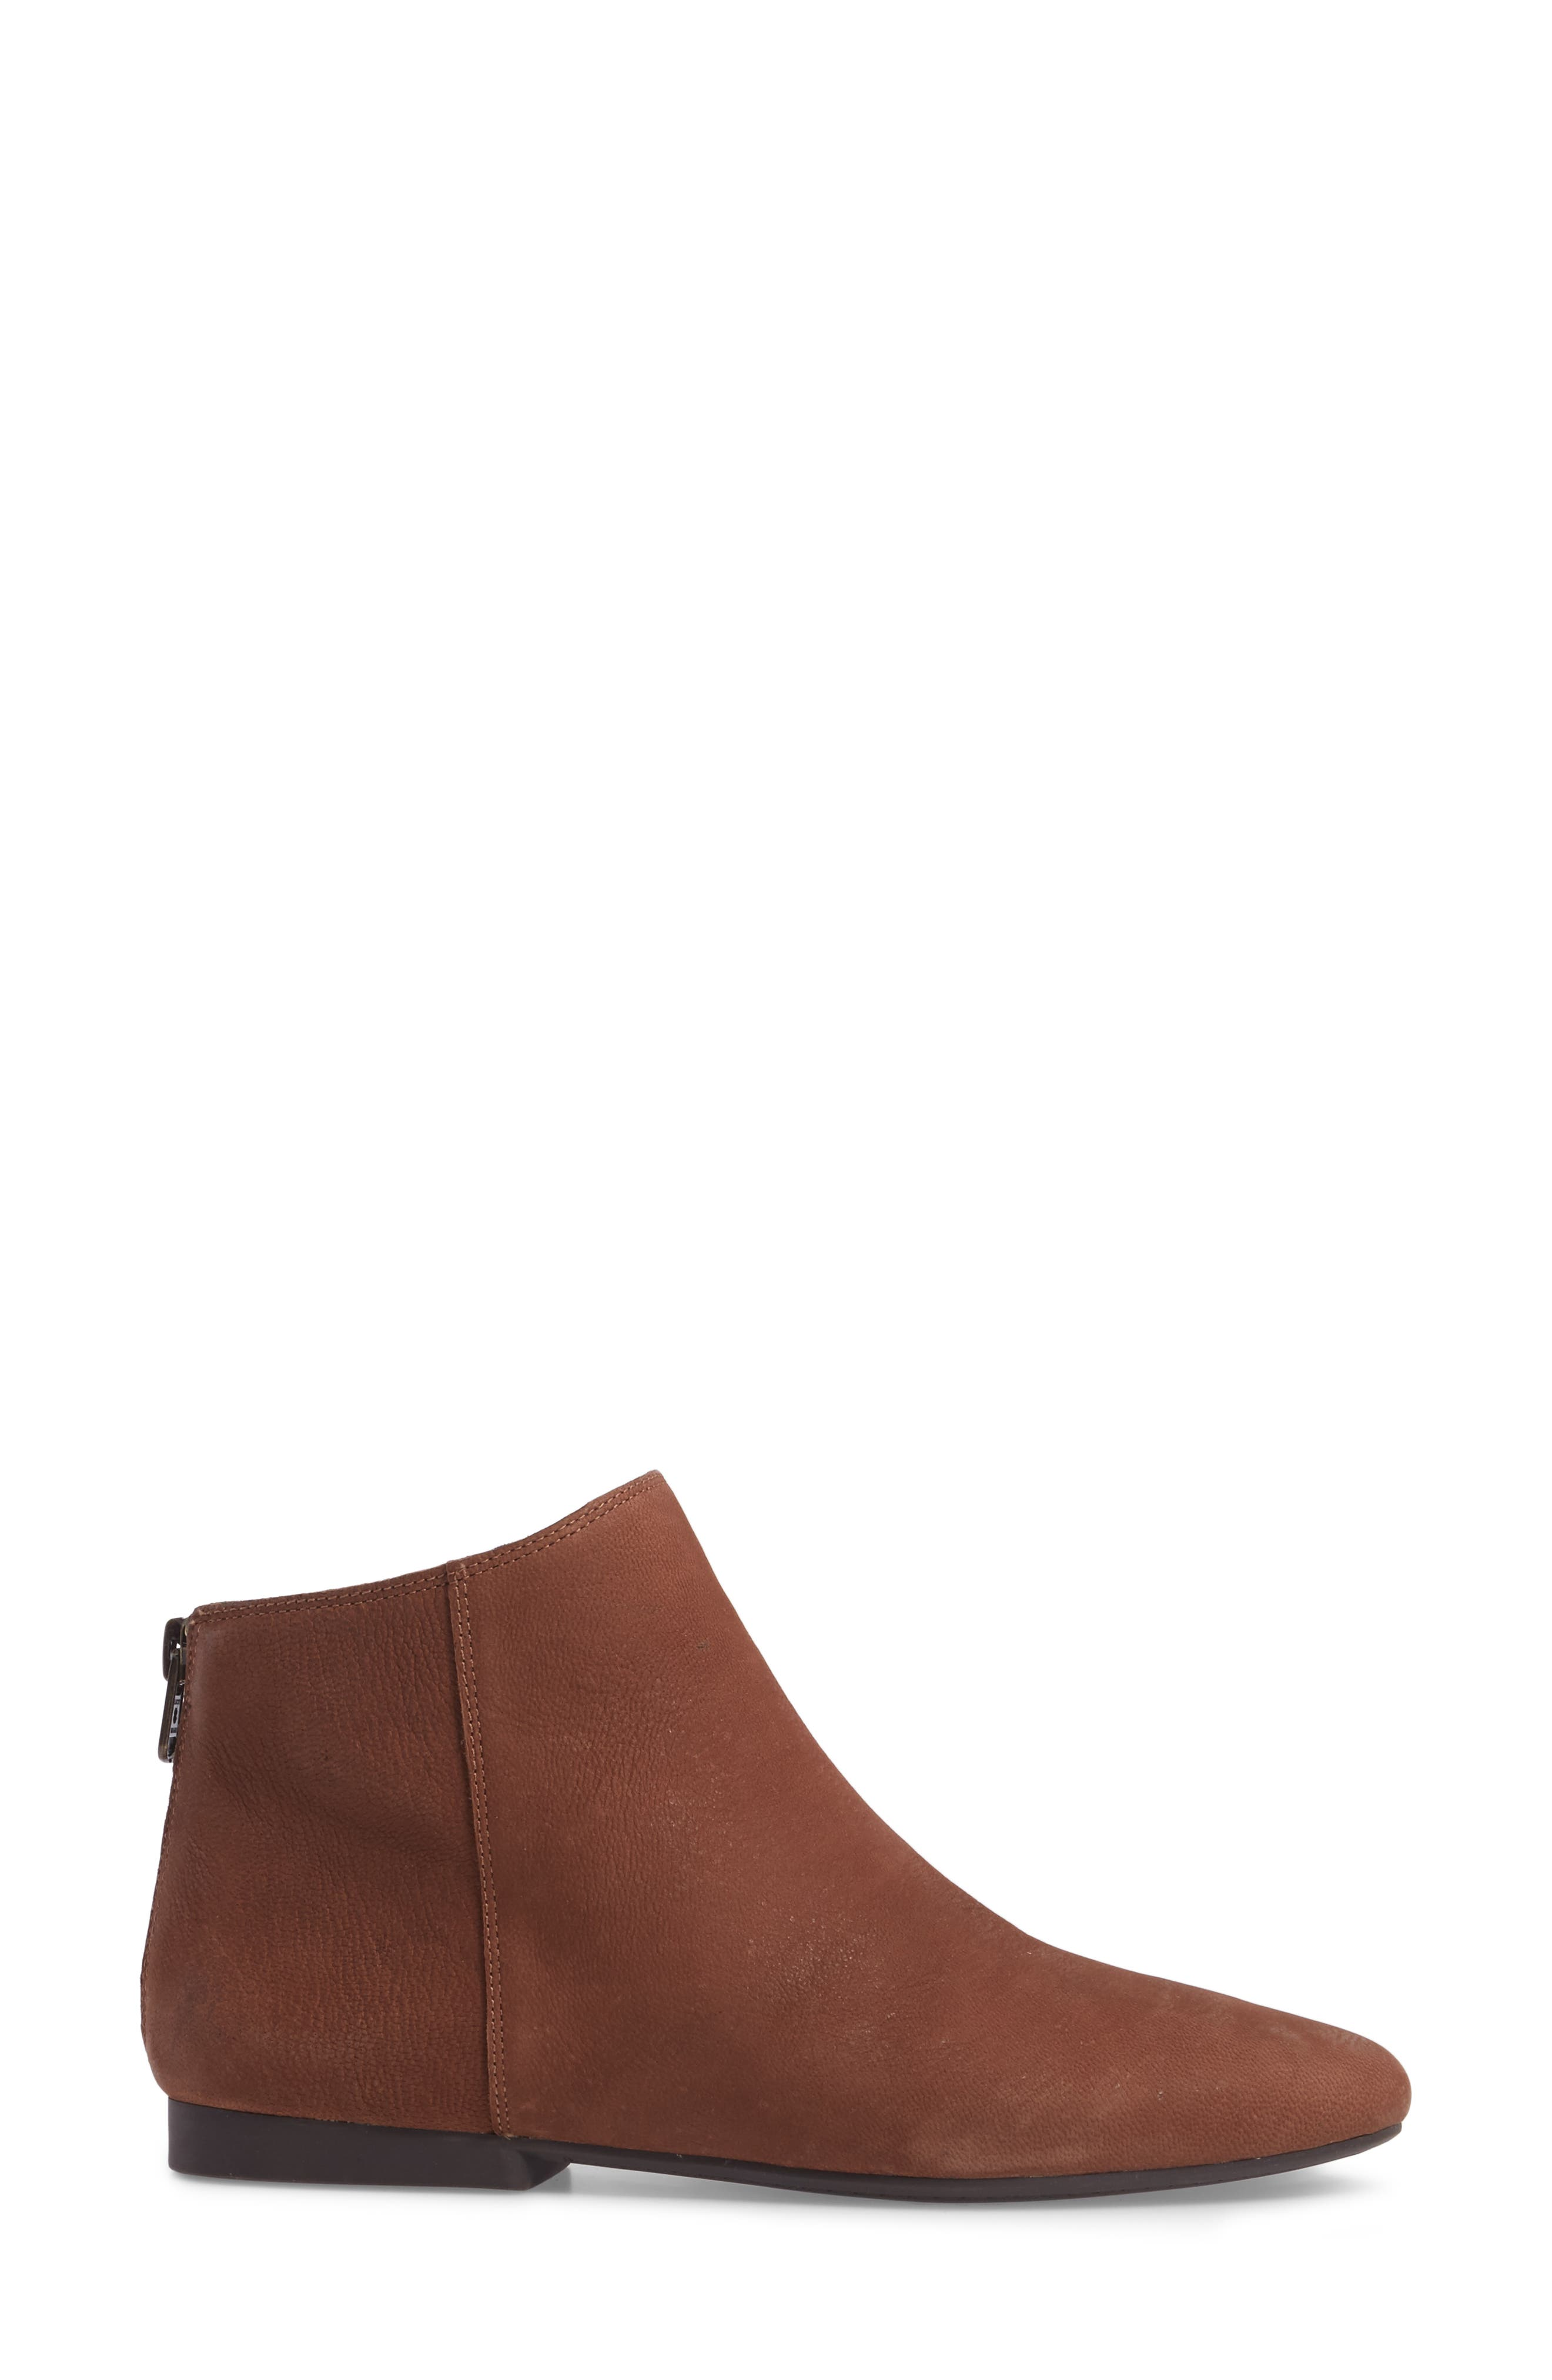 Gaines Bootie,                             Alternate thumbnail 3, color,                             Toffee Leather